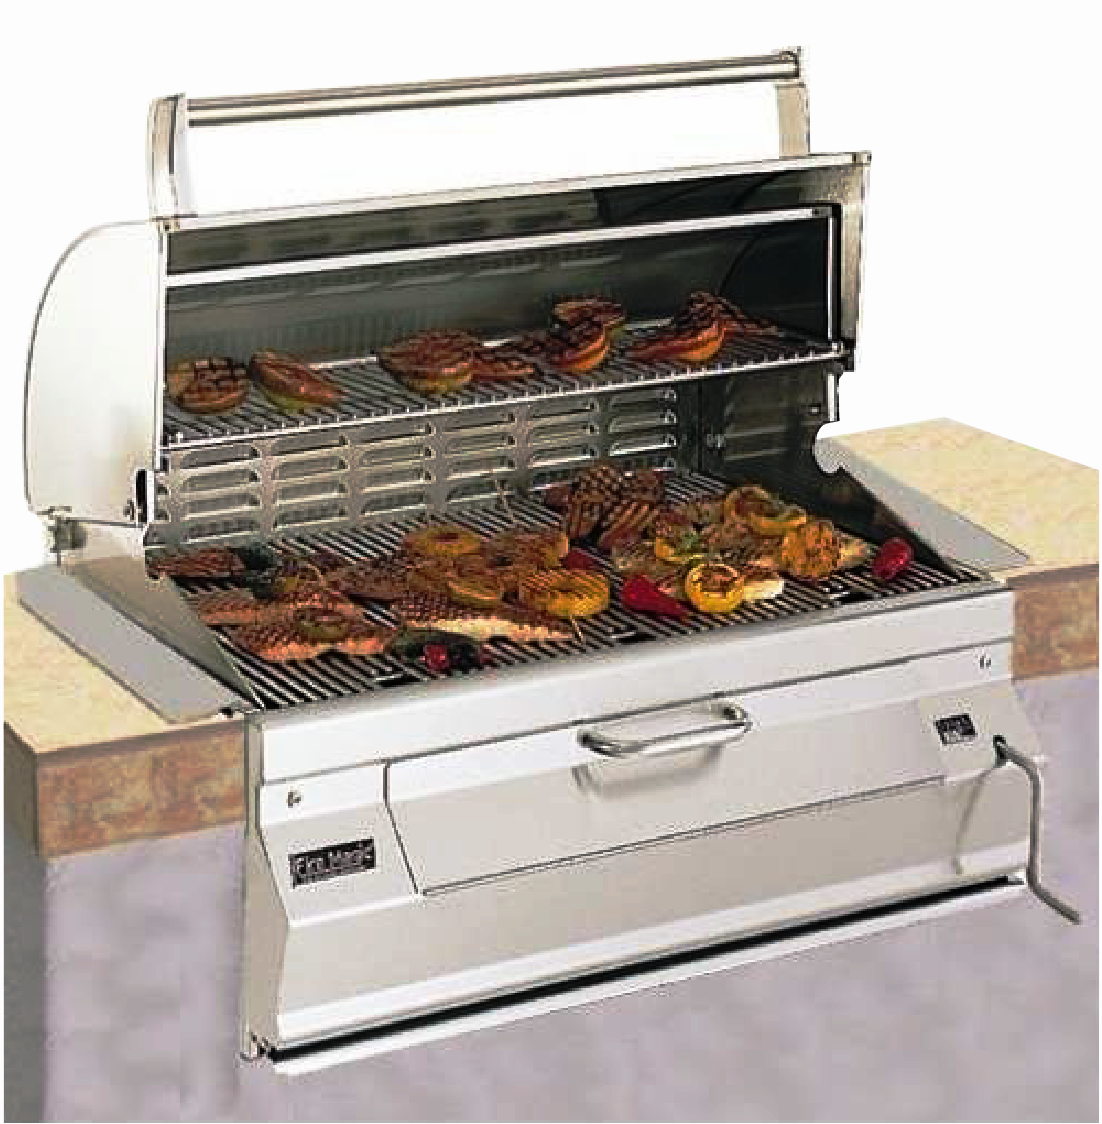 Stainless built in grill 14-S101C-A